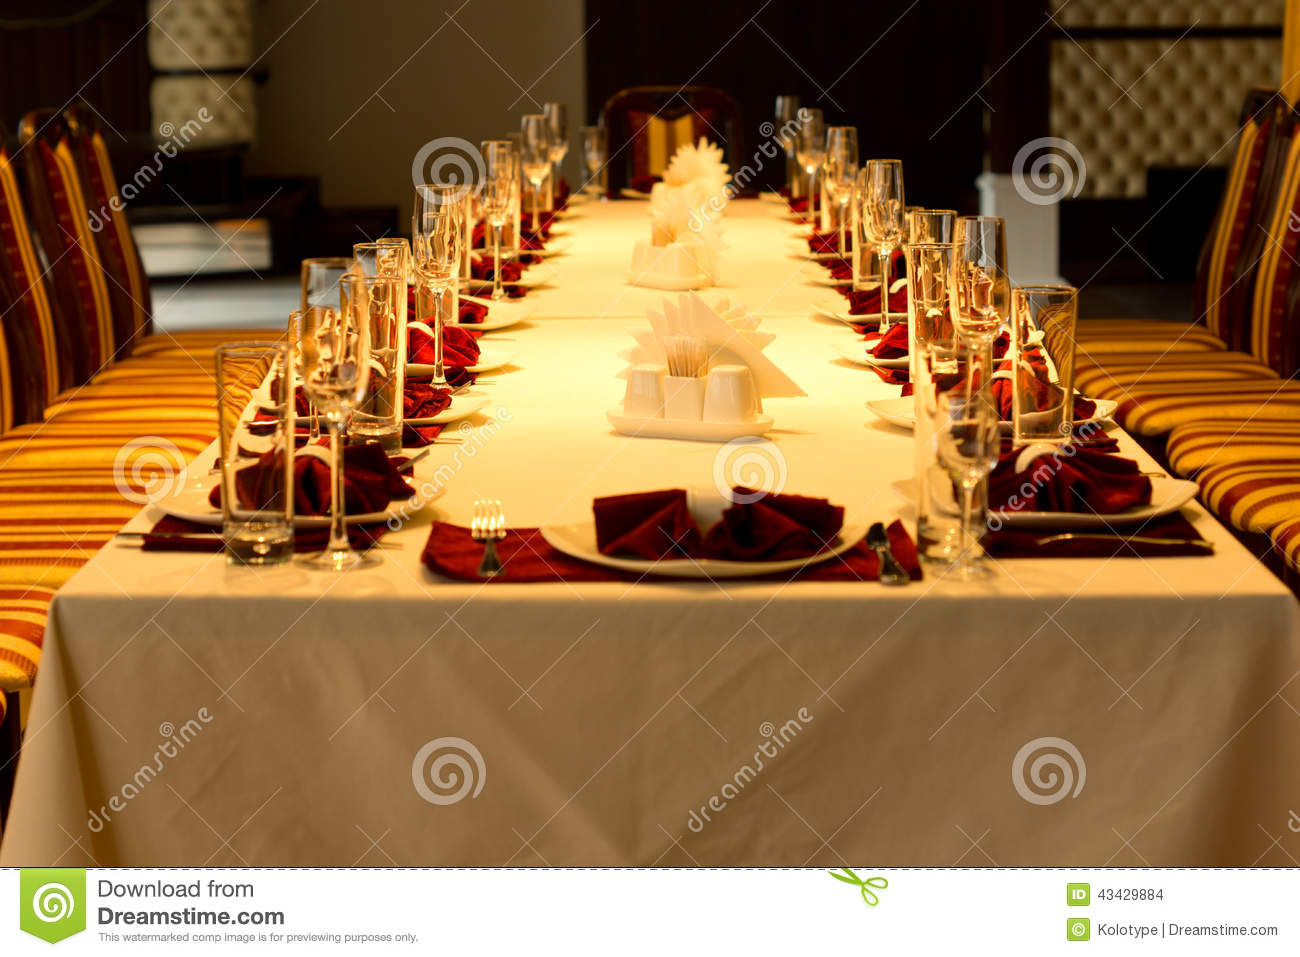 Formal dinner table setting etiquette - Proper Dining Table Setting Proper Dining Table Setting Formal Dinner